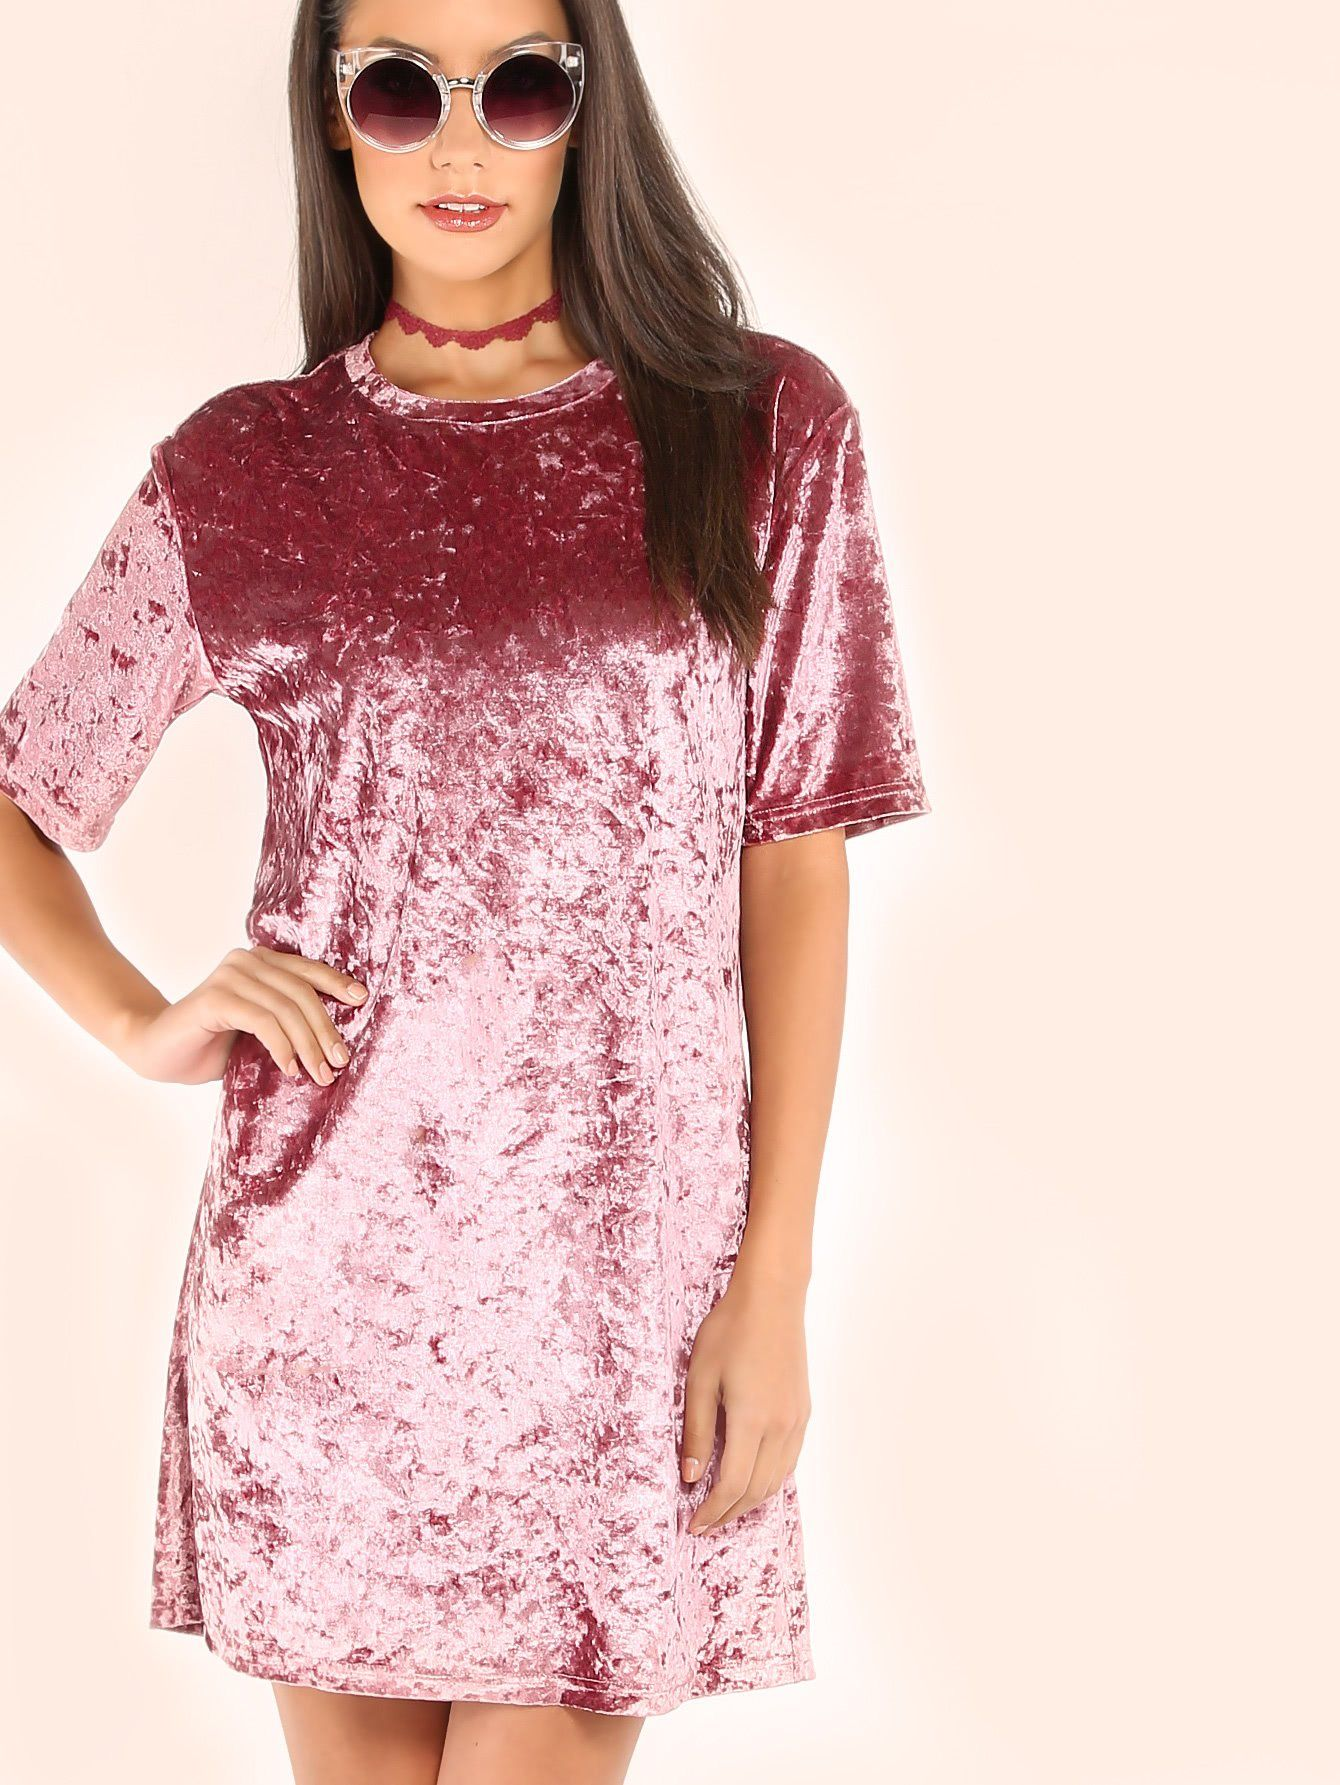 Crushed Velvet T-shirt Dress | Crushed velvet and Products